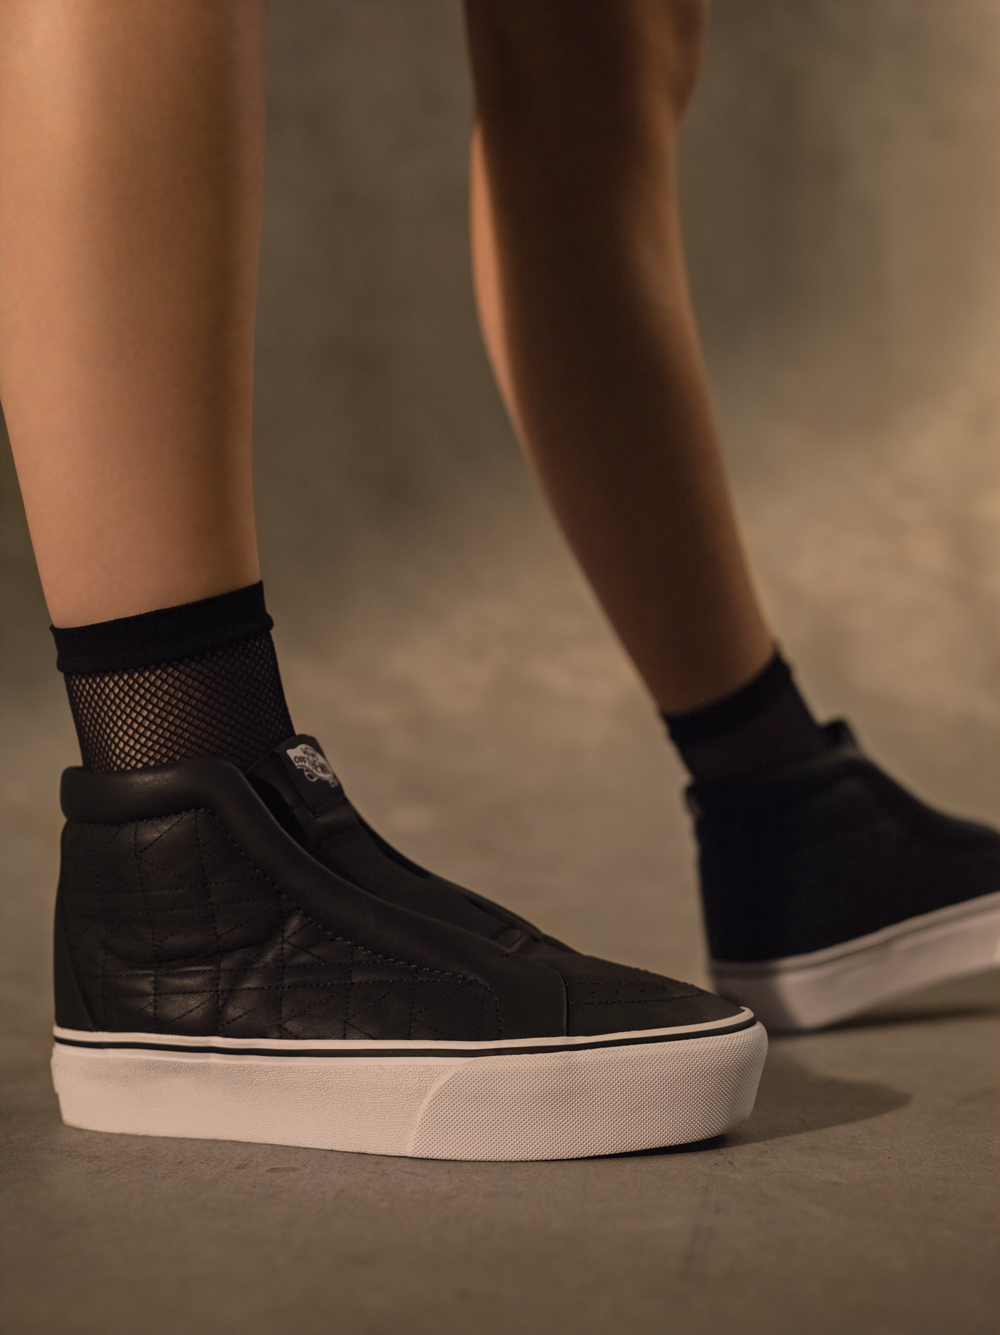 eca216e4b01 The latest work with Karl Lagerfeld takes two variations of the Slip-On